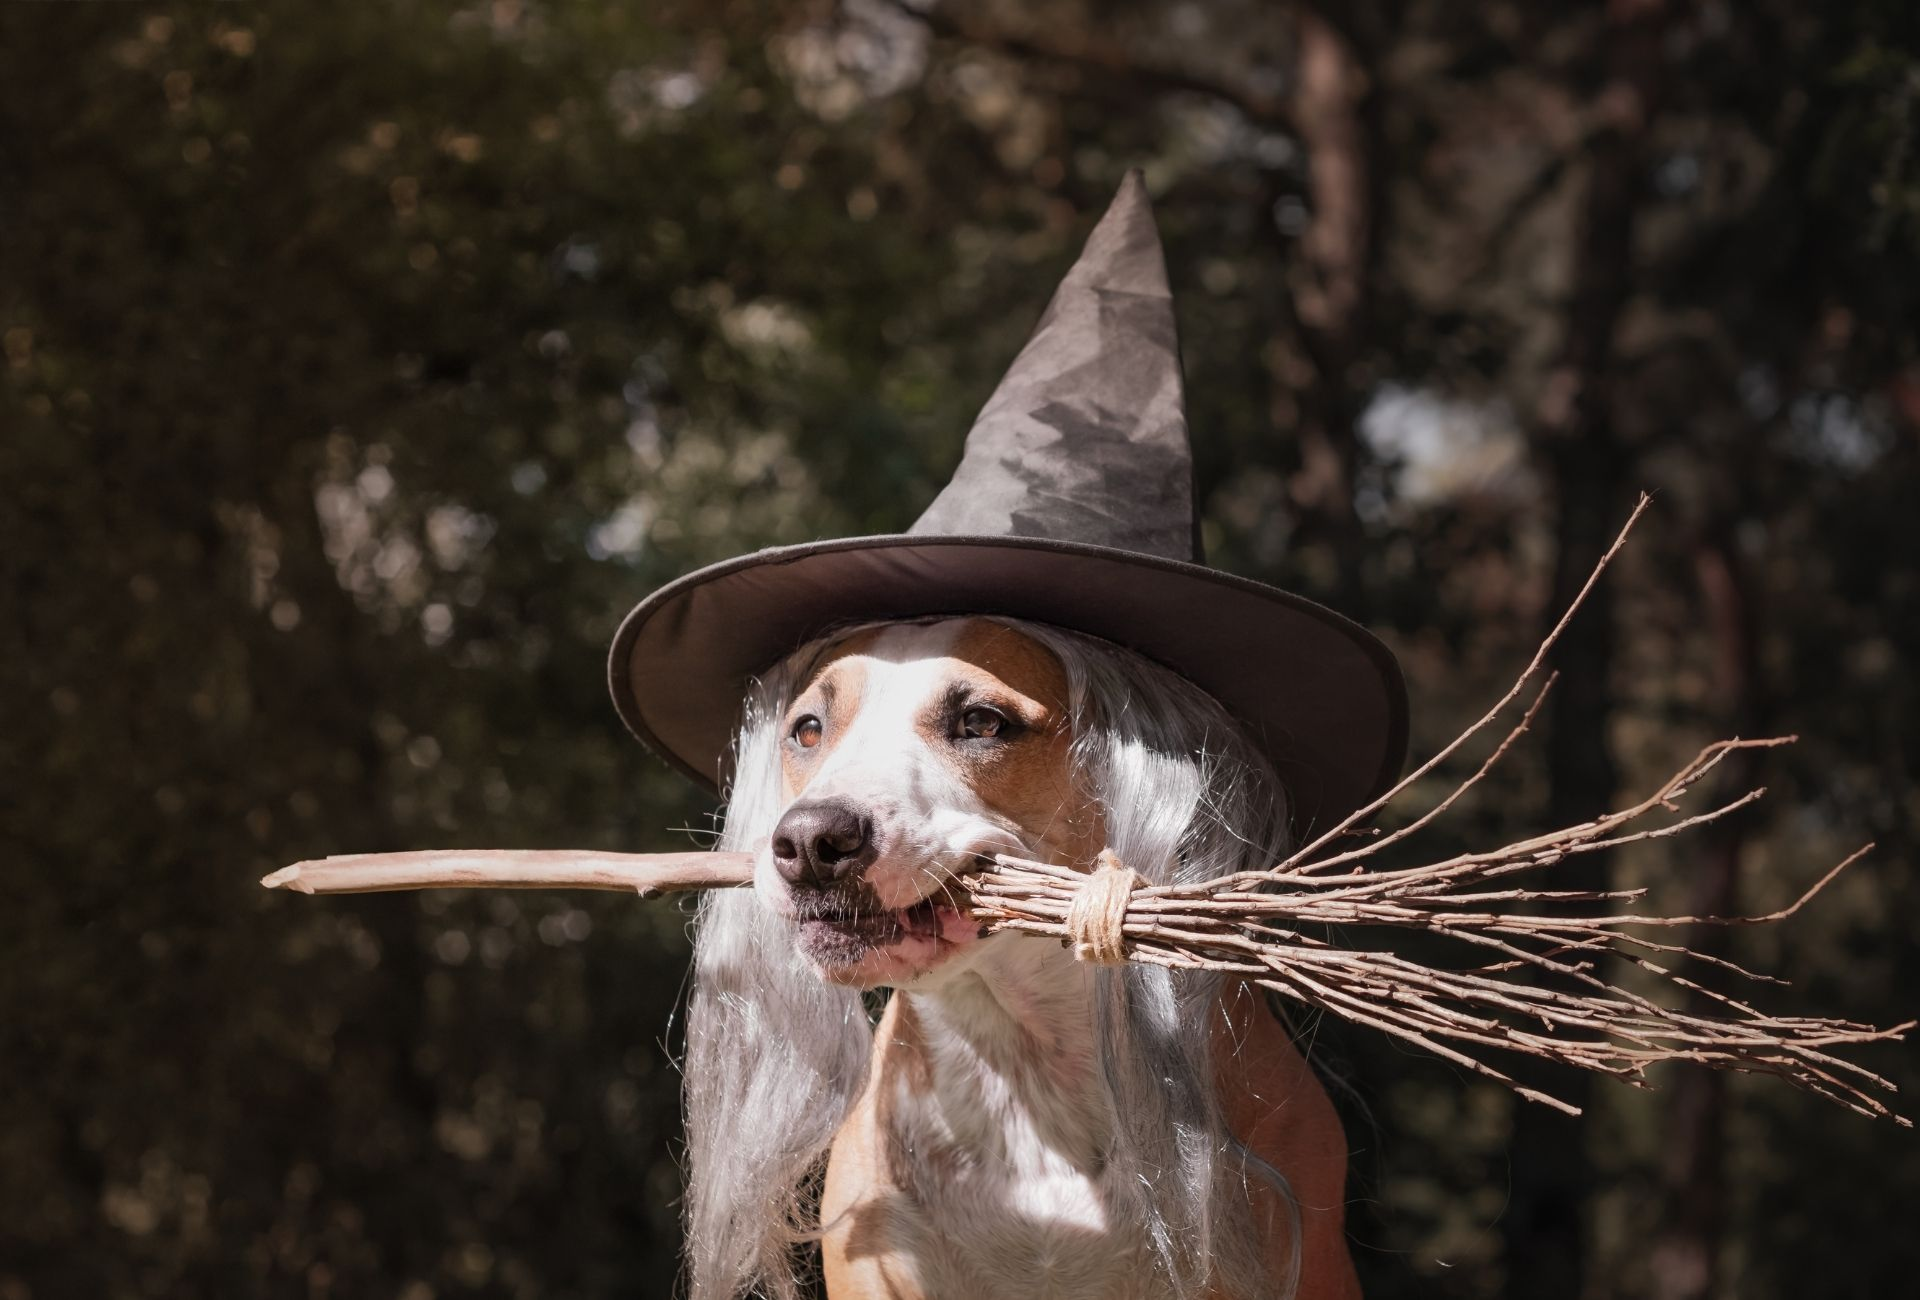 Dog carries a witch broom between the fangs and wears a witch hat.